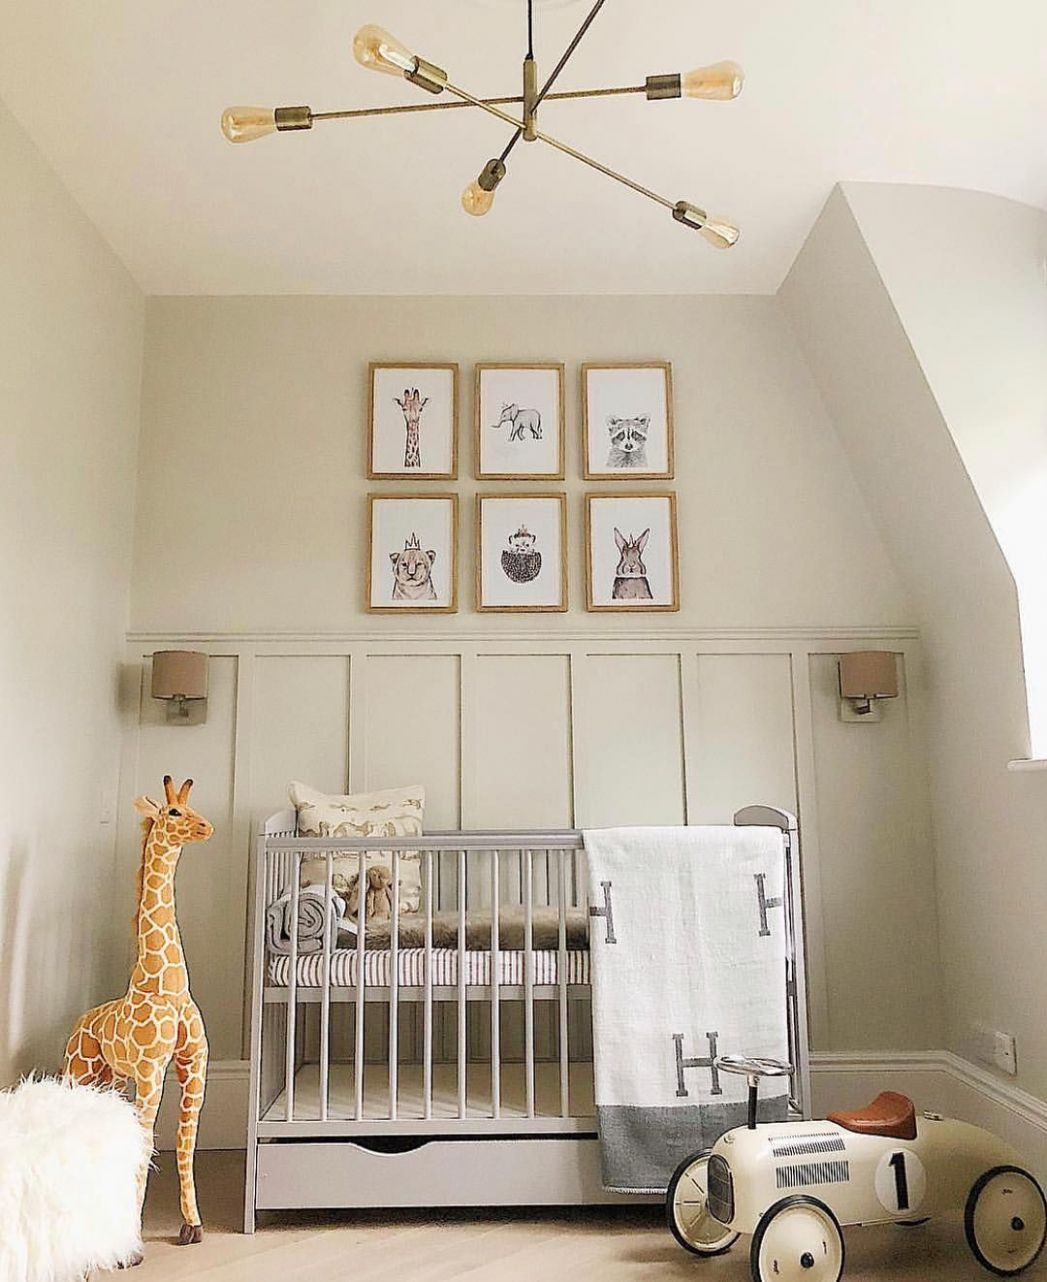 9 Gorgeous Baby Boy Nursery Ideas to Inspire You | Baby room ...